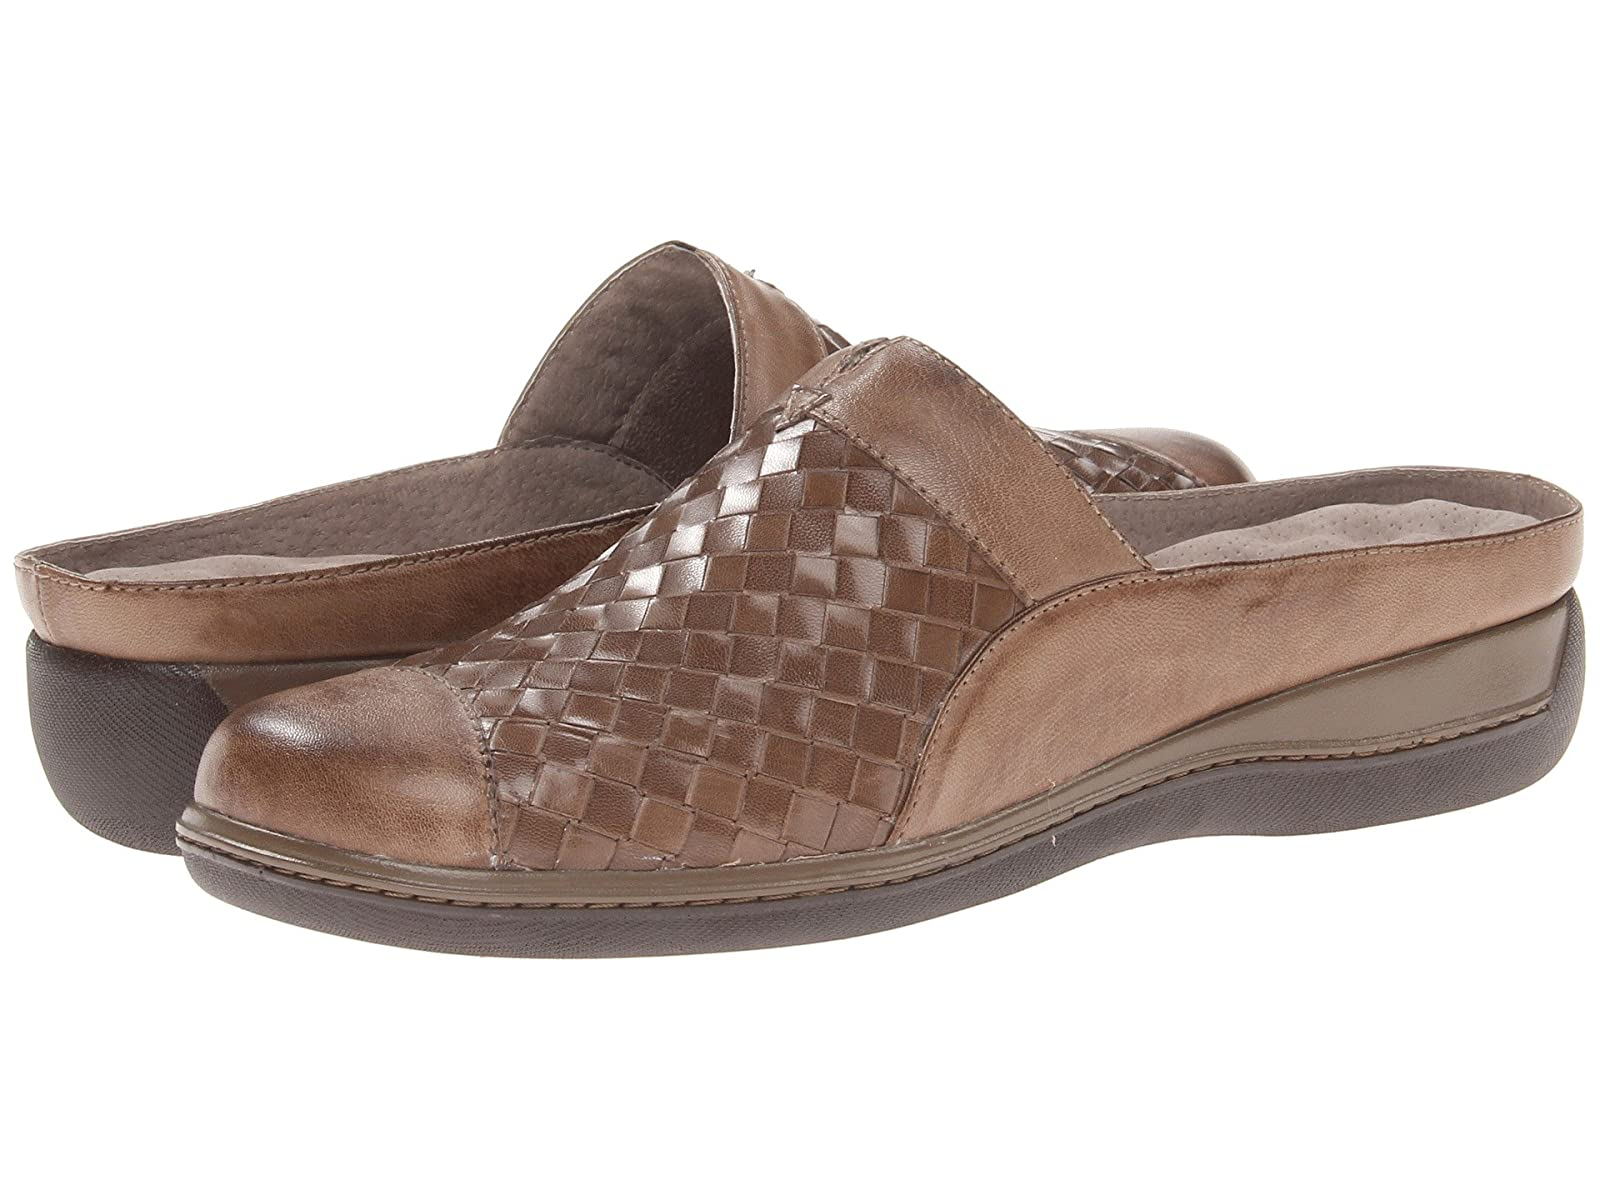 SoftWalk San Marcos WovenCheap and distinctive eye-catching shoes